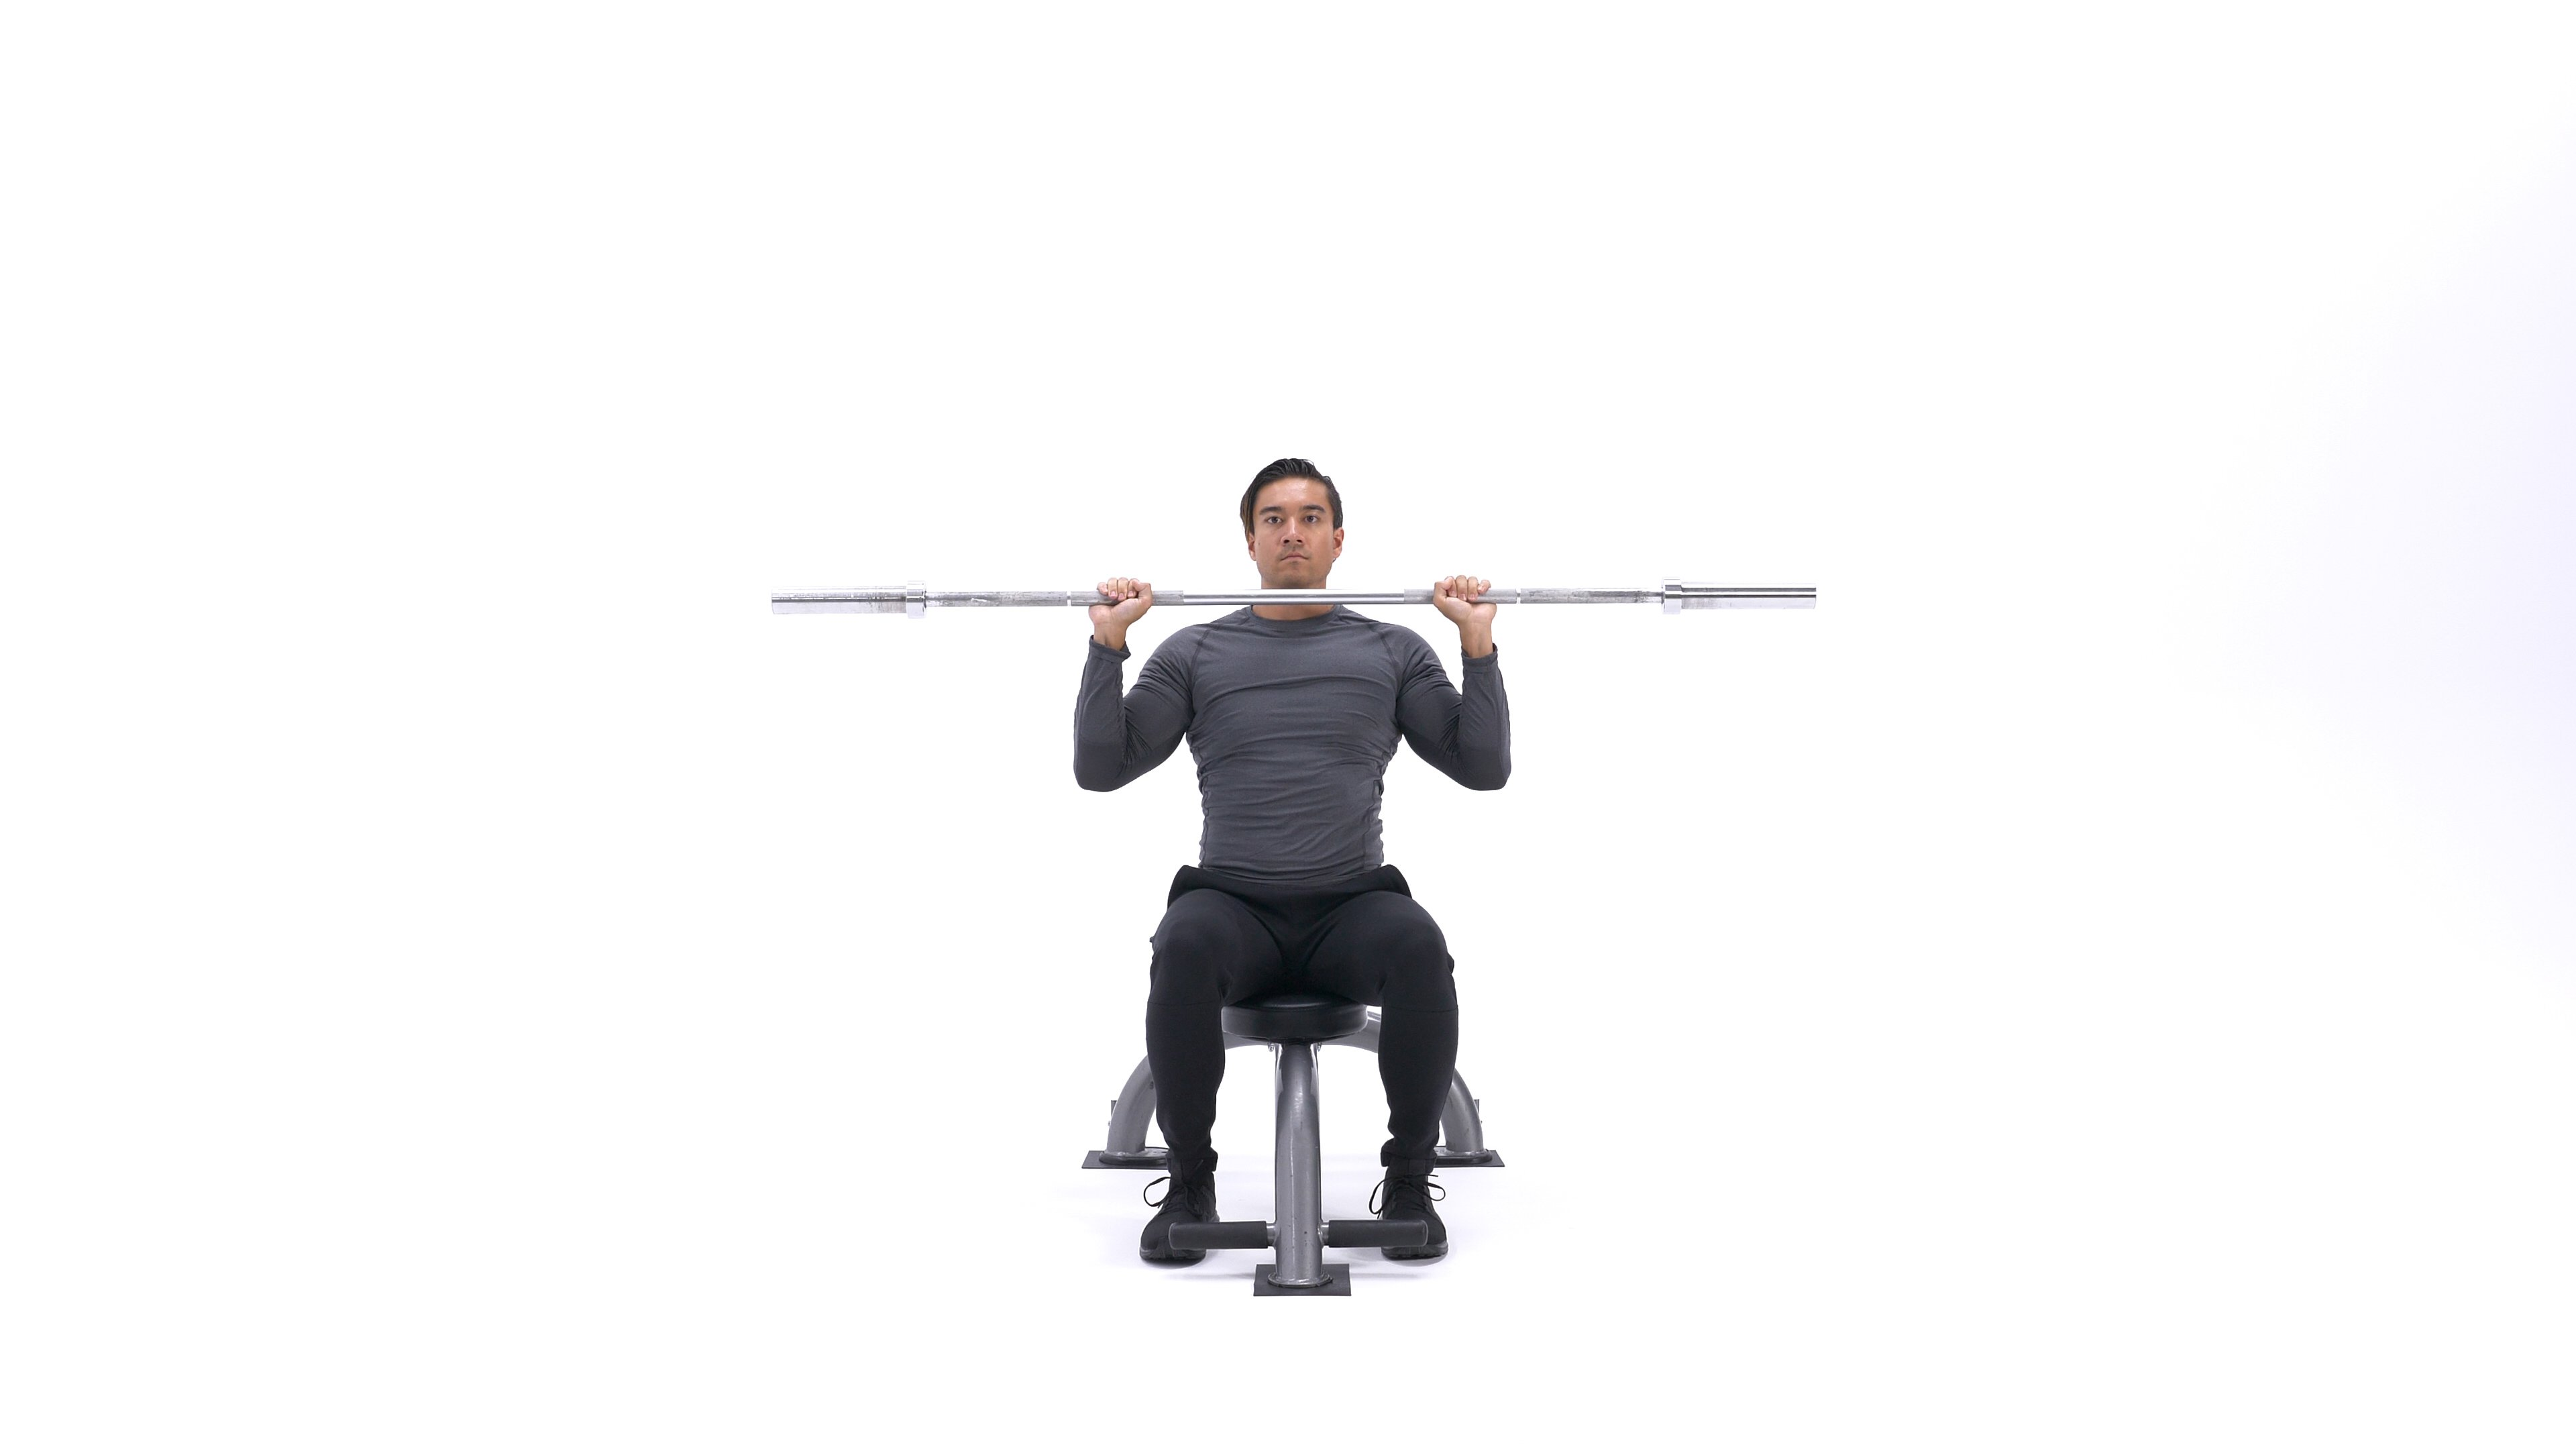 Barbell Shoulder Press image